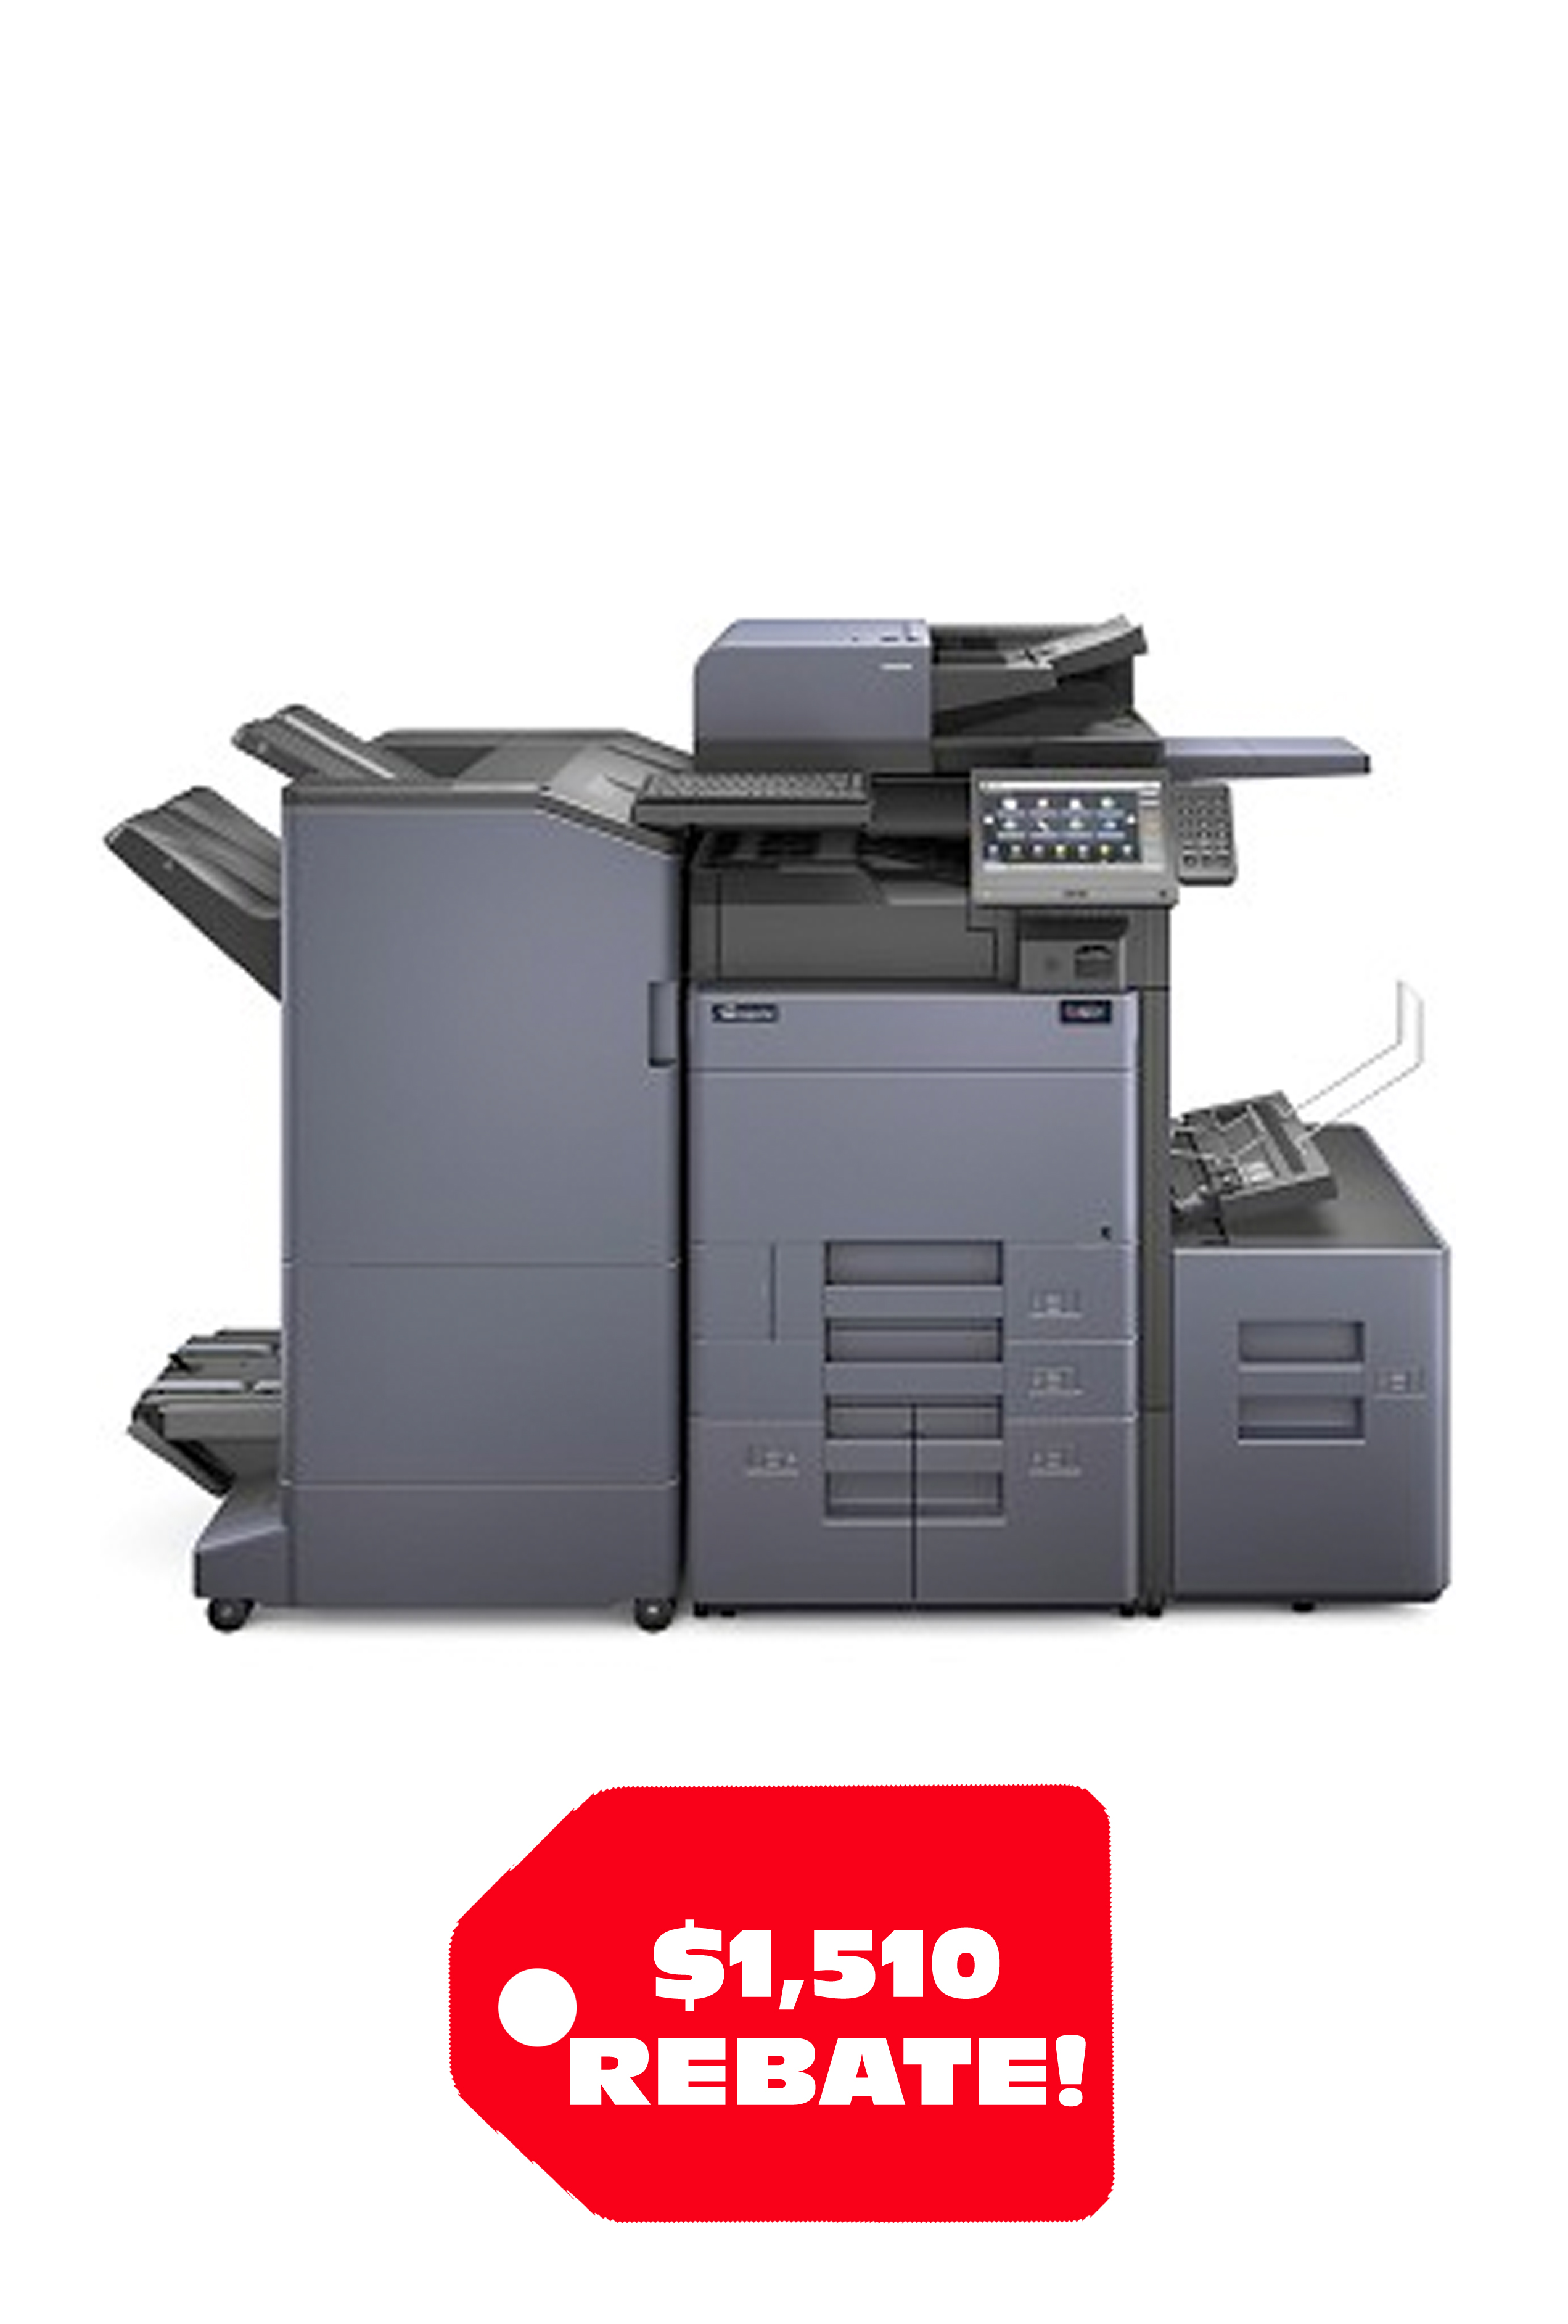 Copystar COPYSTAR CS 4053ci (40/40 PPM) A3 Color MFP